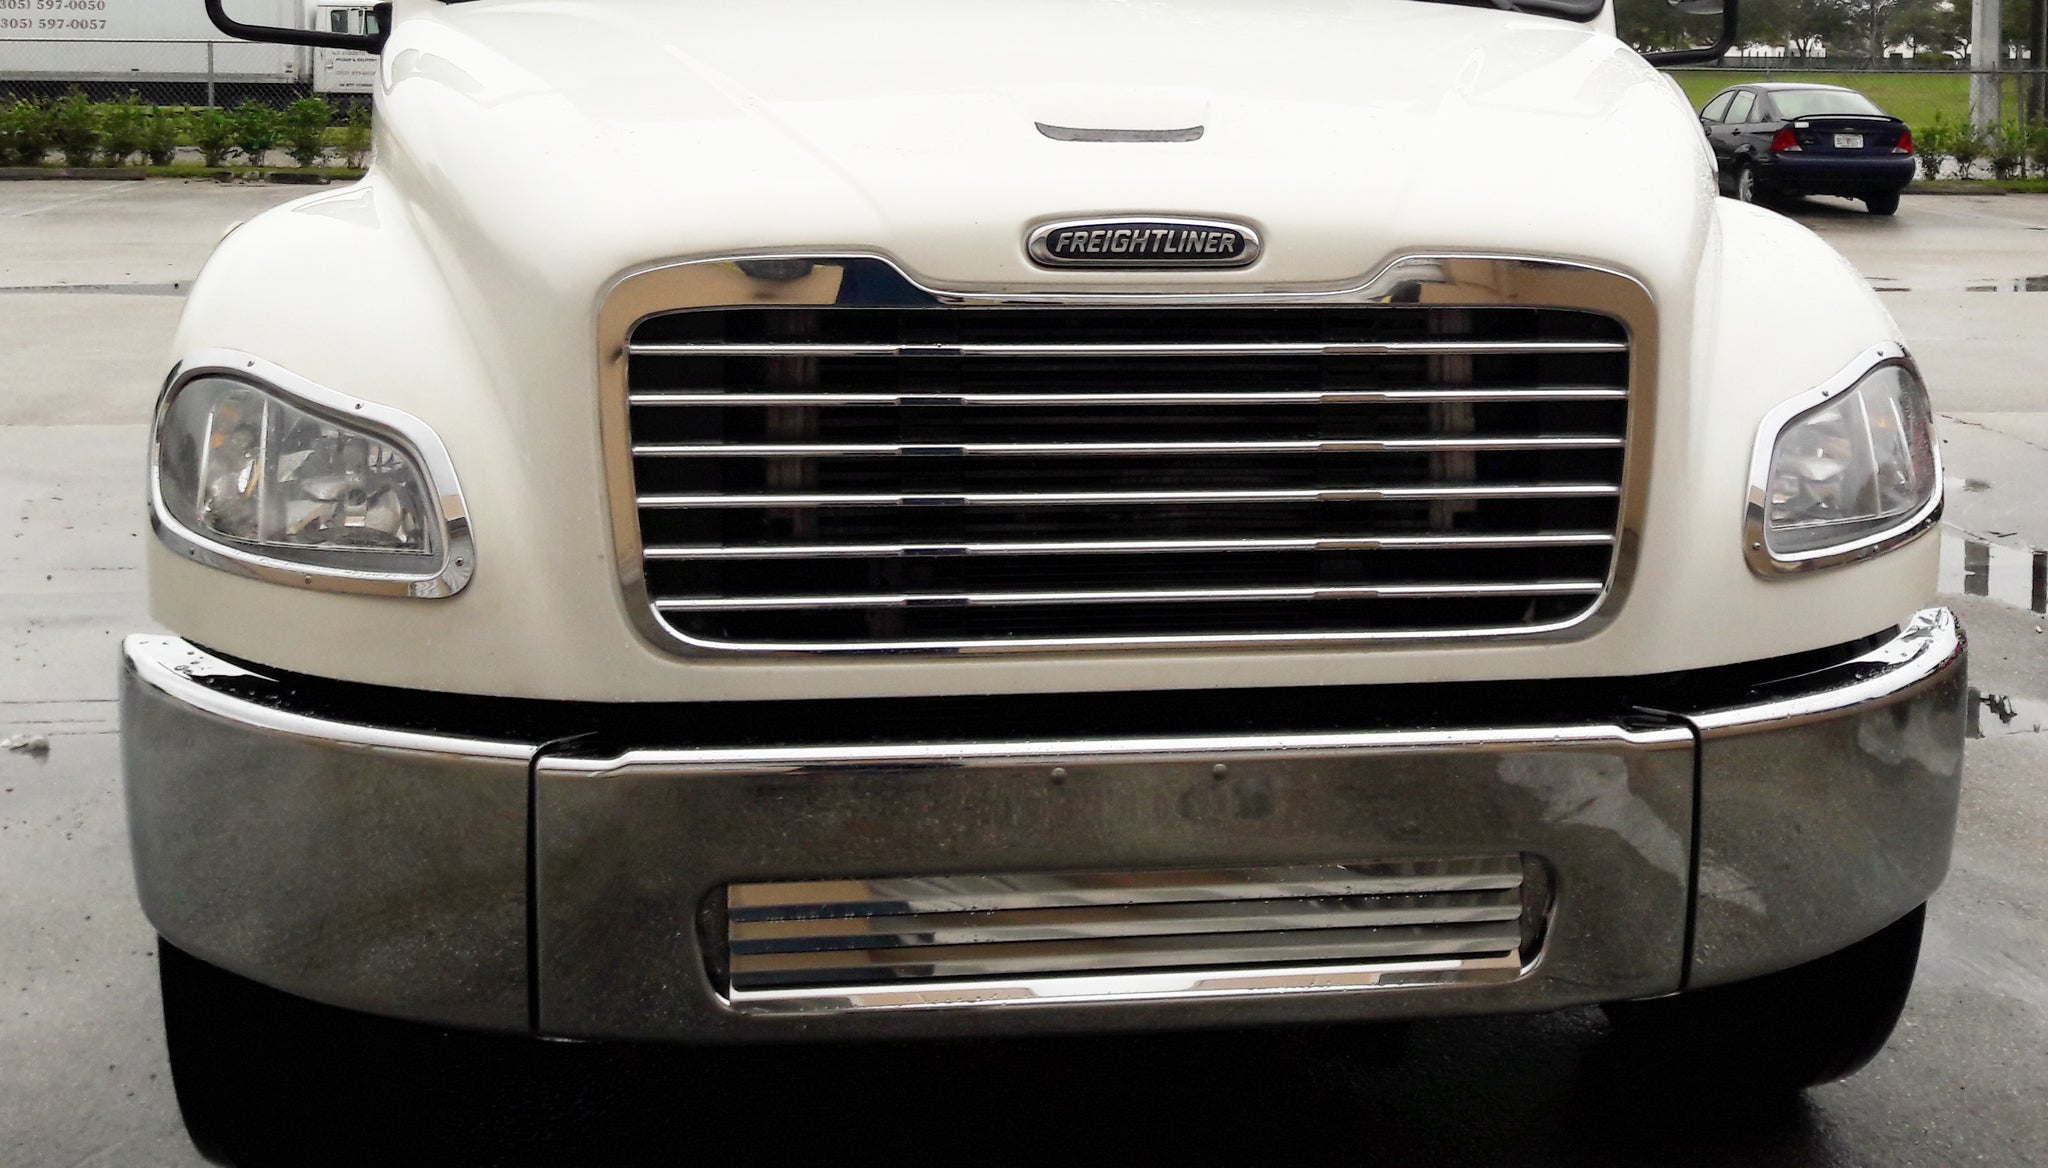 freightliner business class m2 fuse box 29 92    business class m2 106 chrome bumper 21680 up fits  business class m2 106 chrome bumper